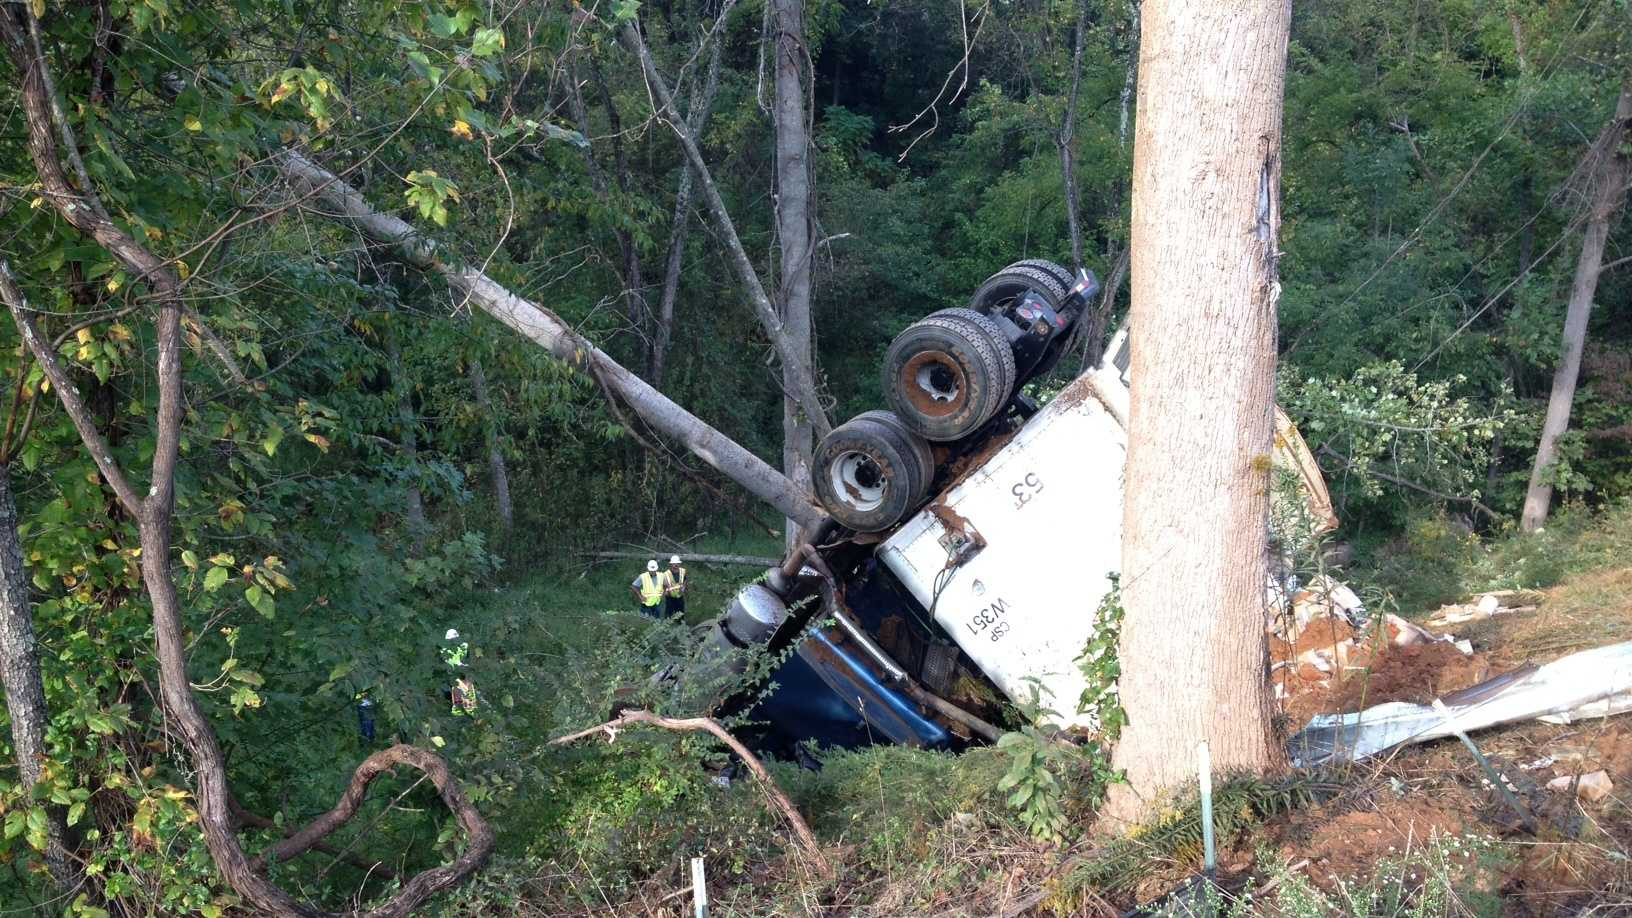 This tractor-trailer went down a steep embankment off US 52 early Friday morning. (Craig Marimpietri/WXII)